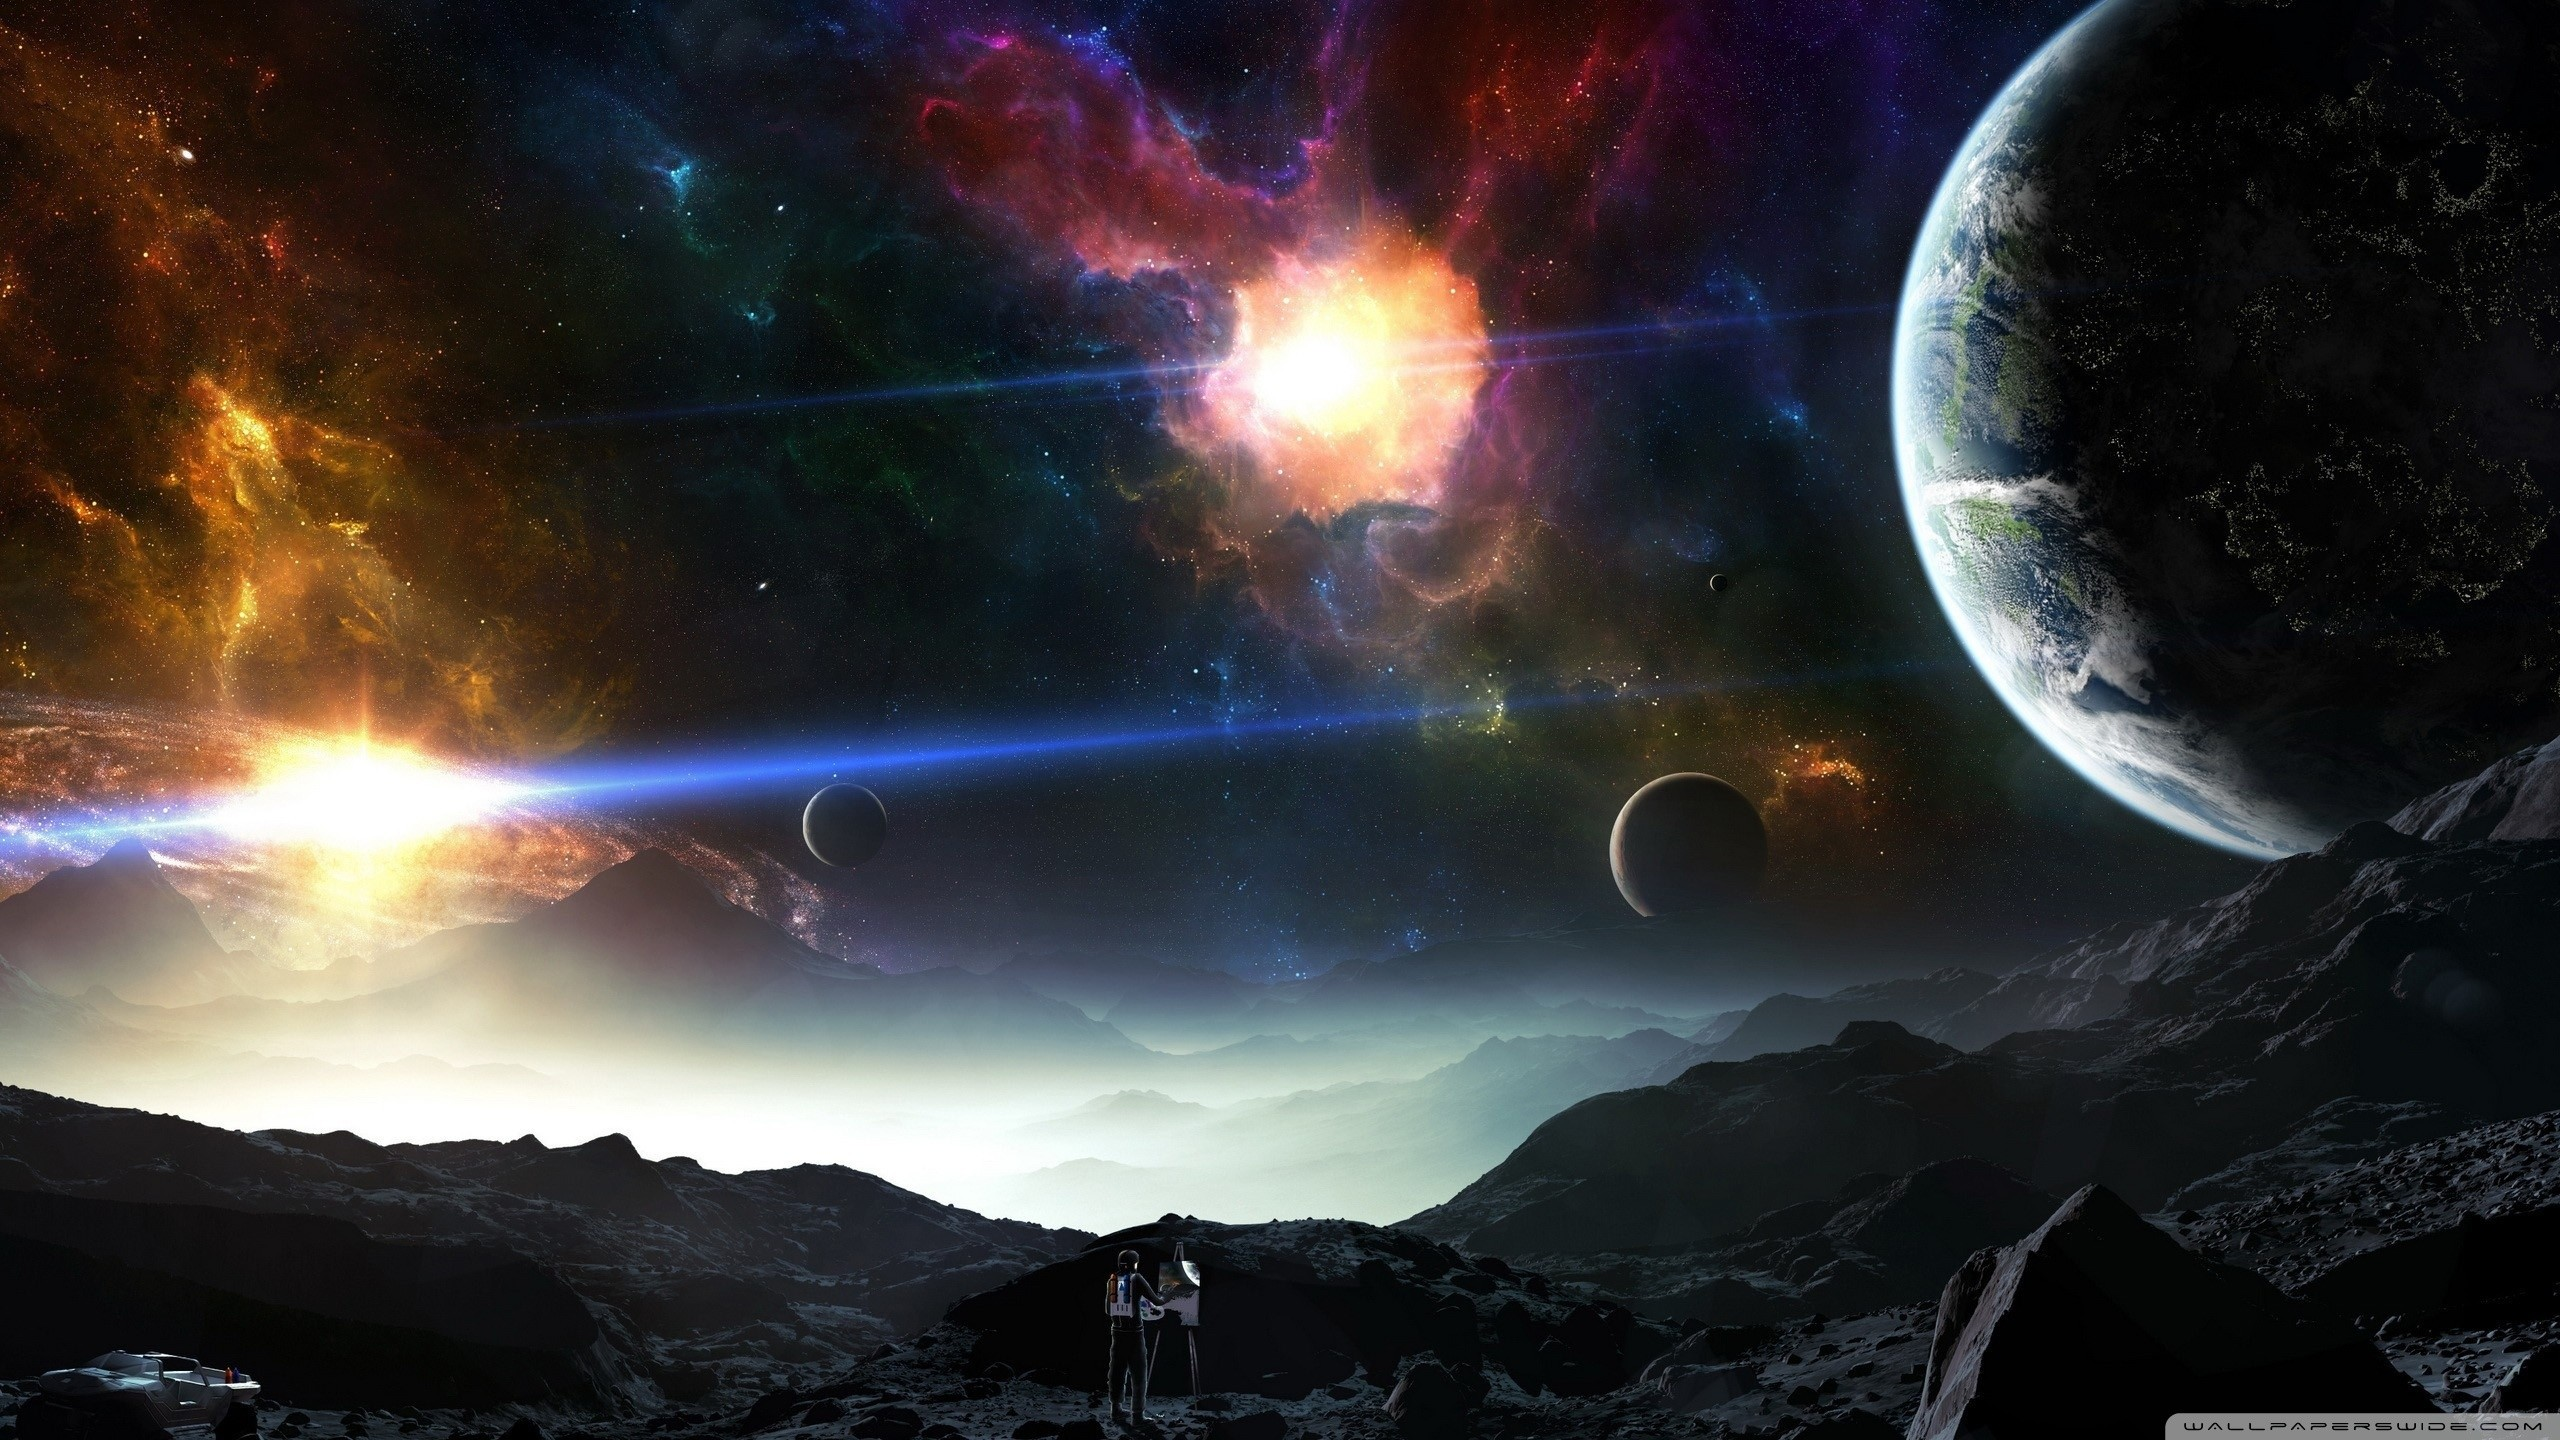 Explore Space Planets, Art Spaces, and more!